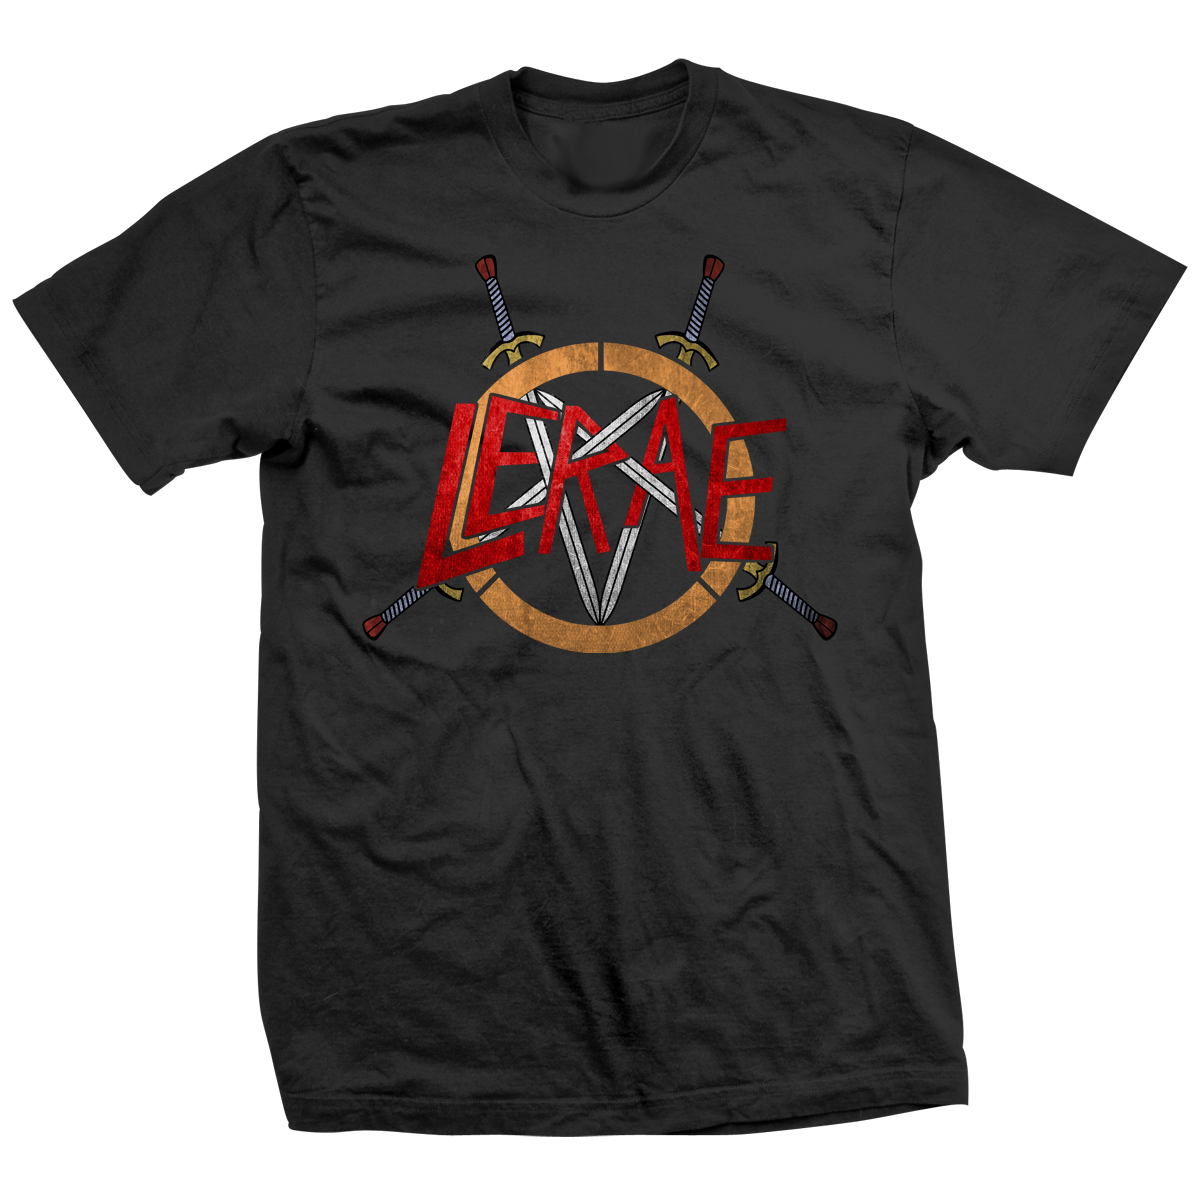 Candice LeRae Slayer LeRae T-shirt